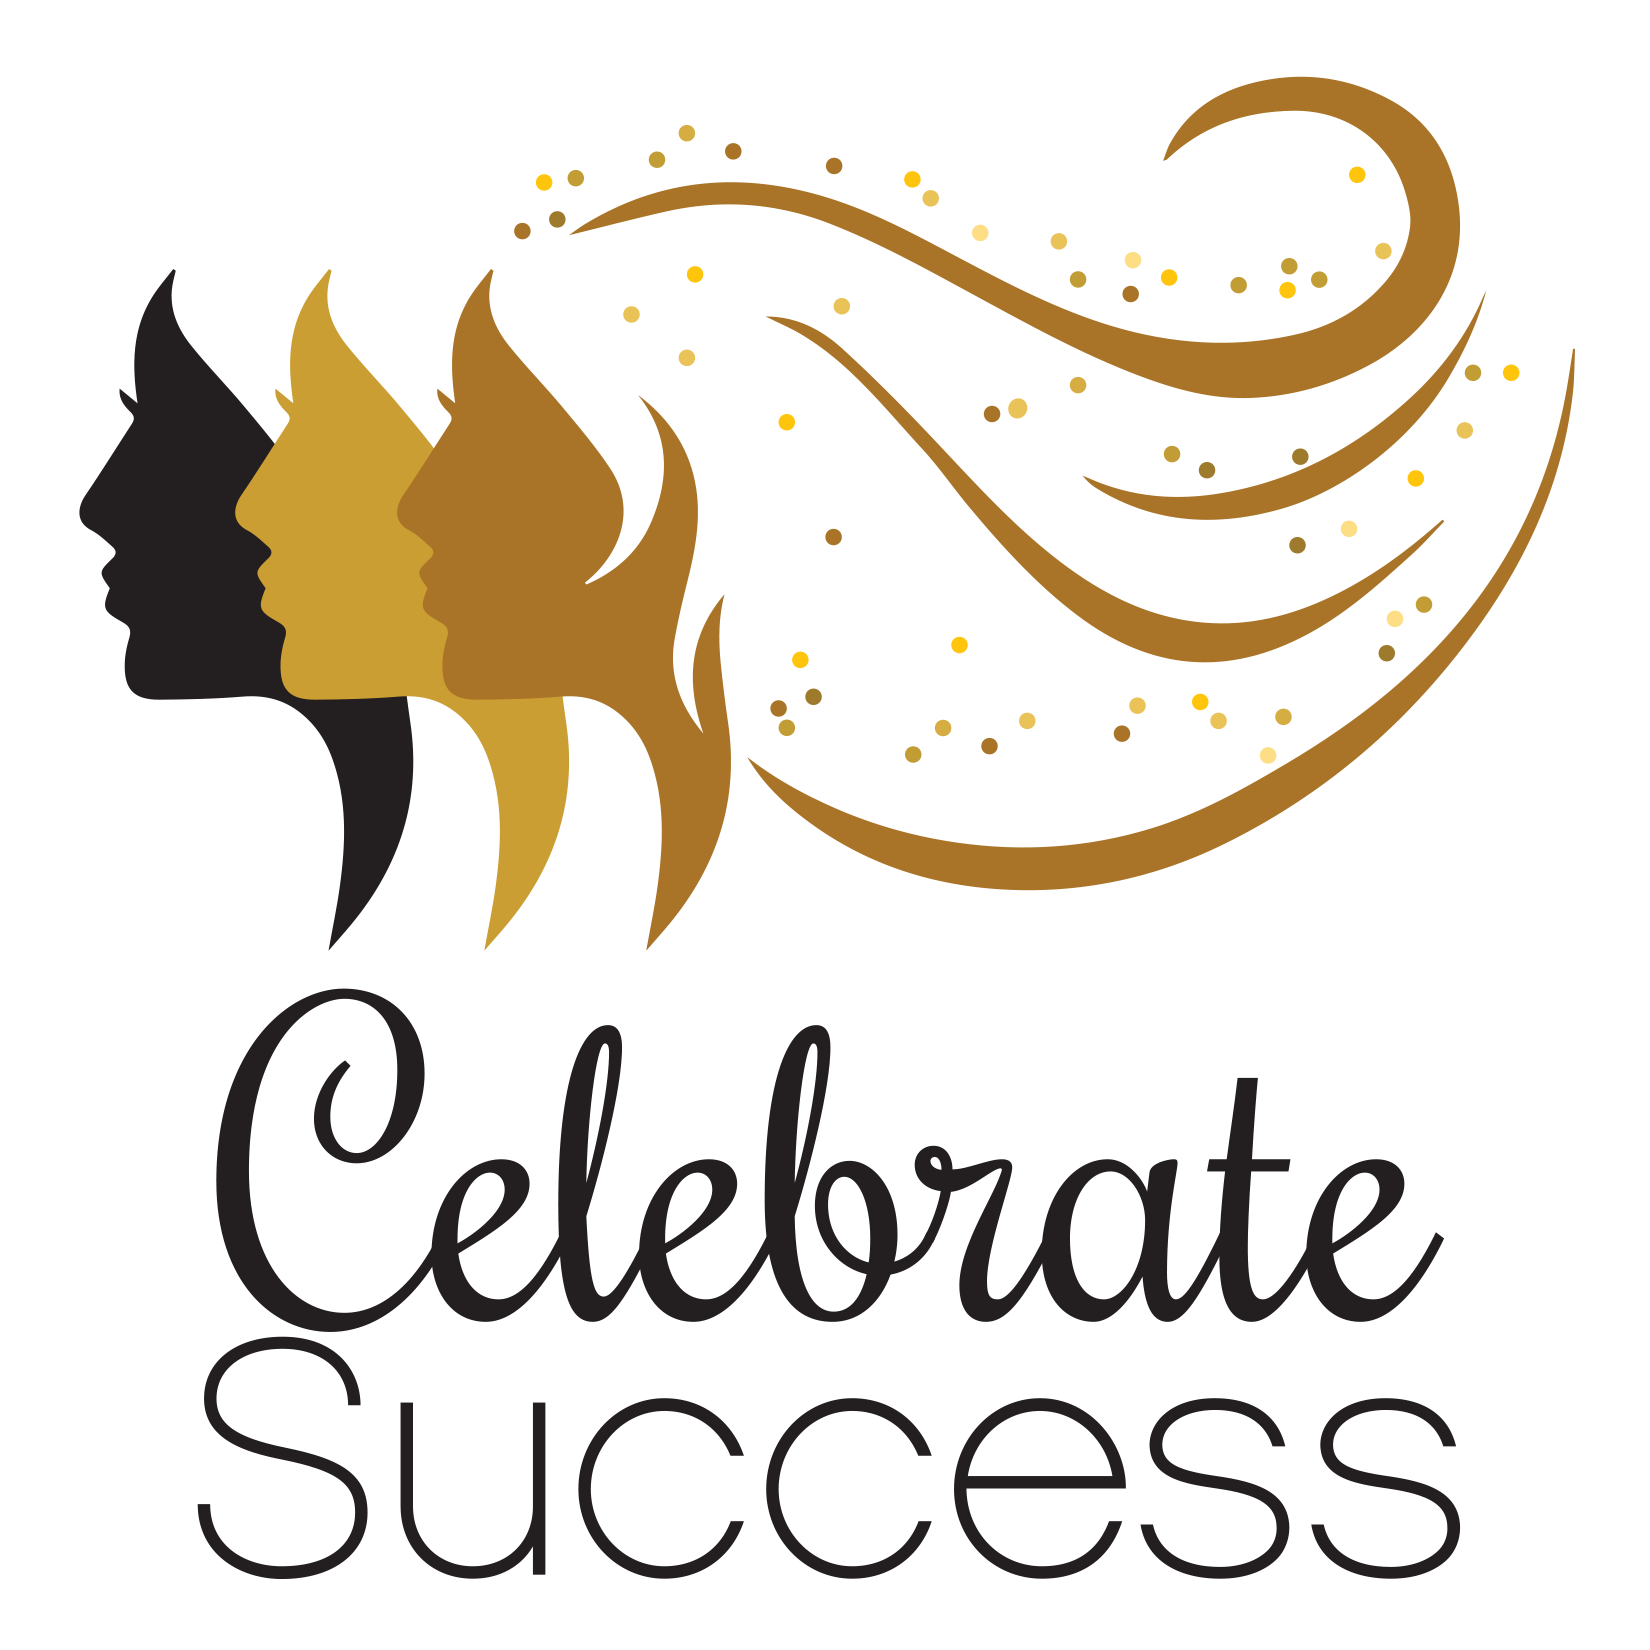 Celebrate success dinner with. Fundraiser clipart auction chinese